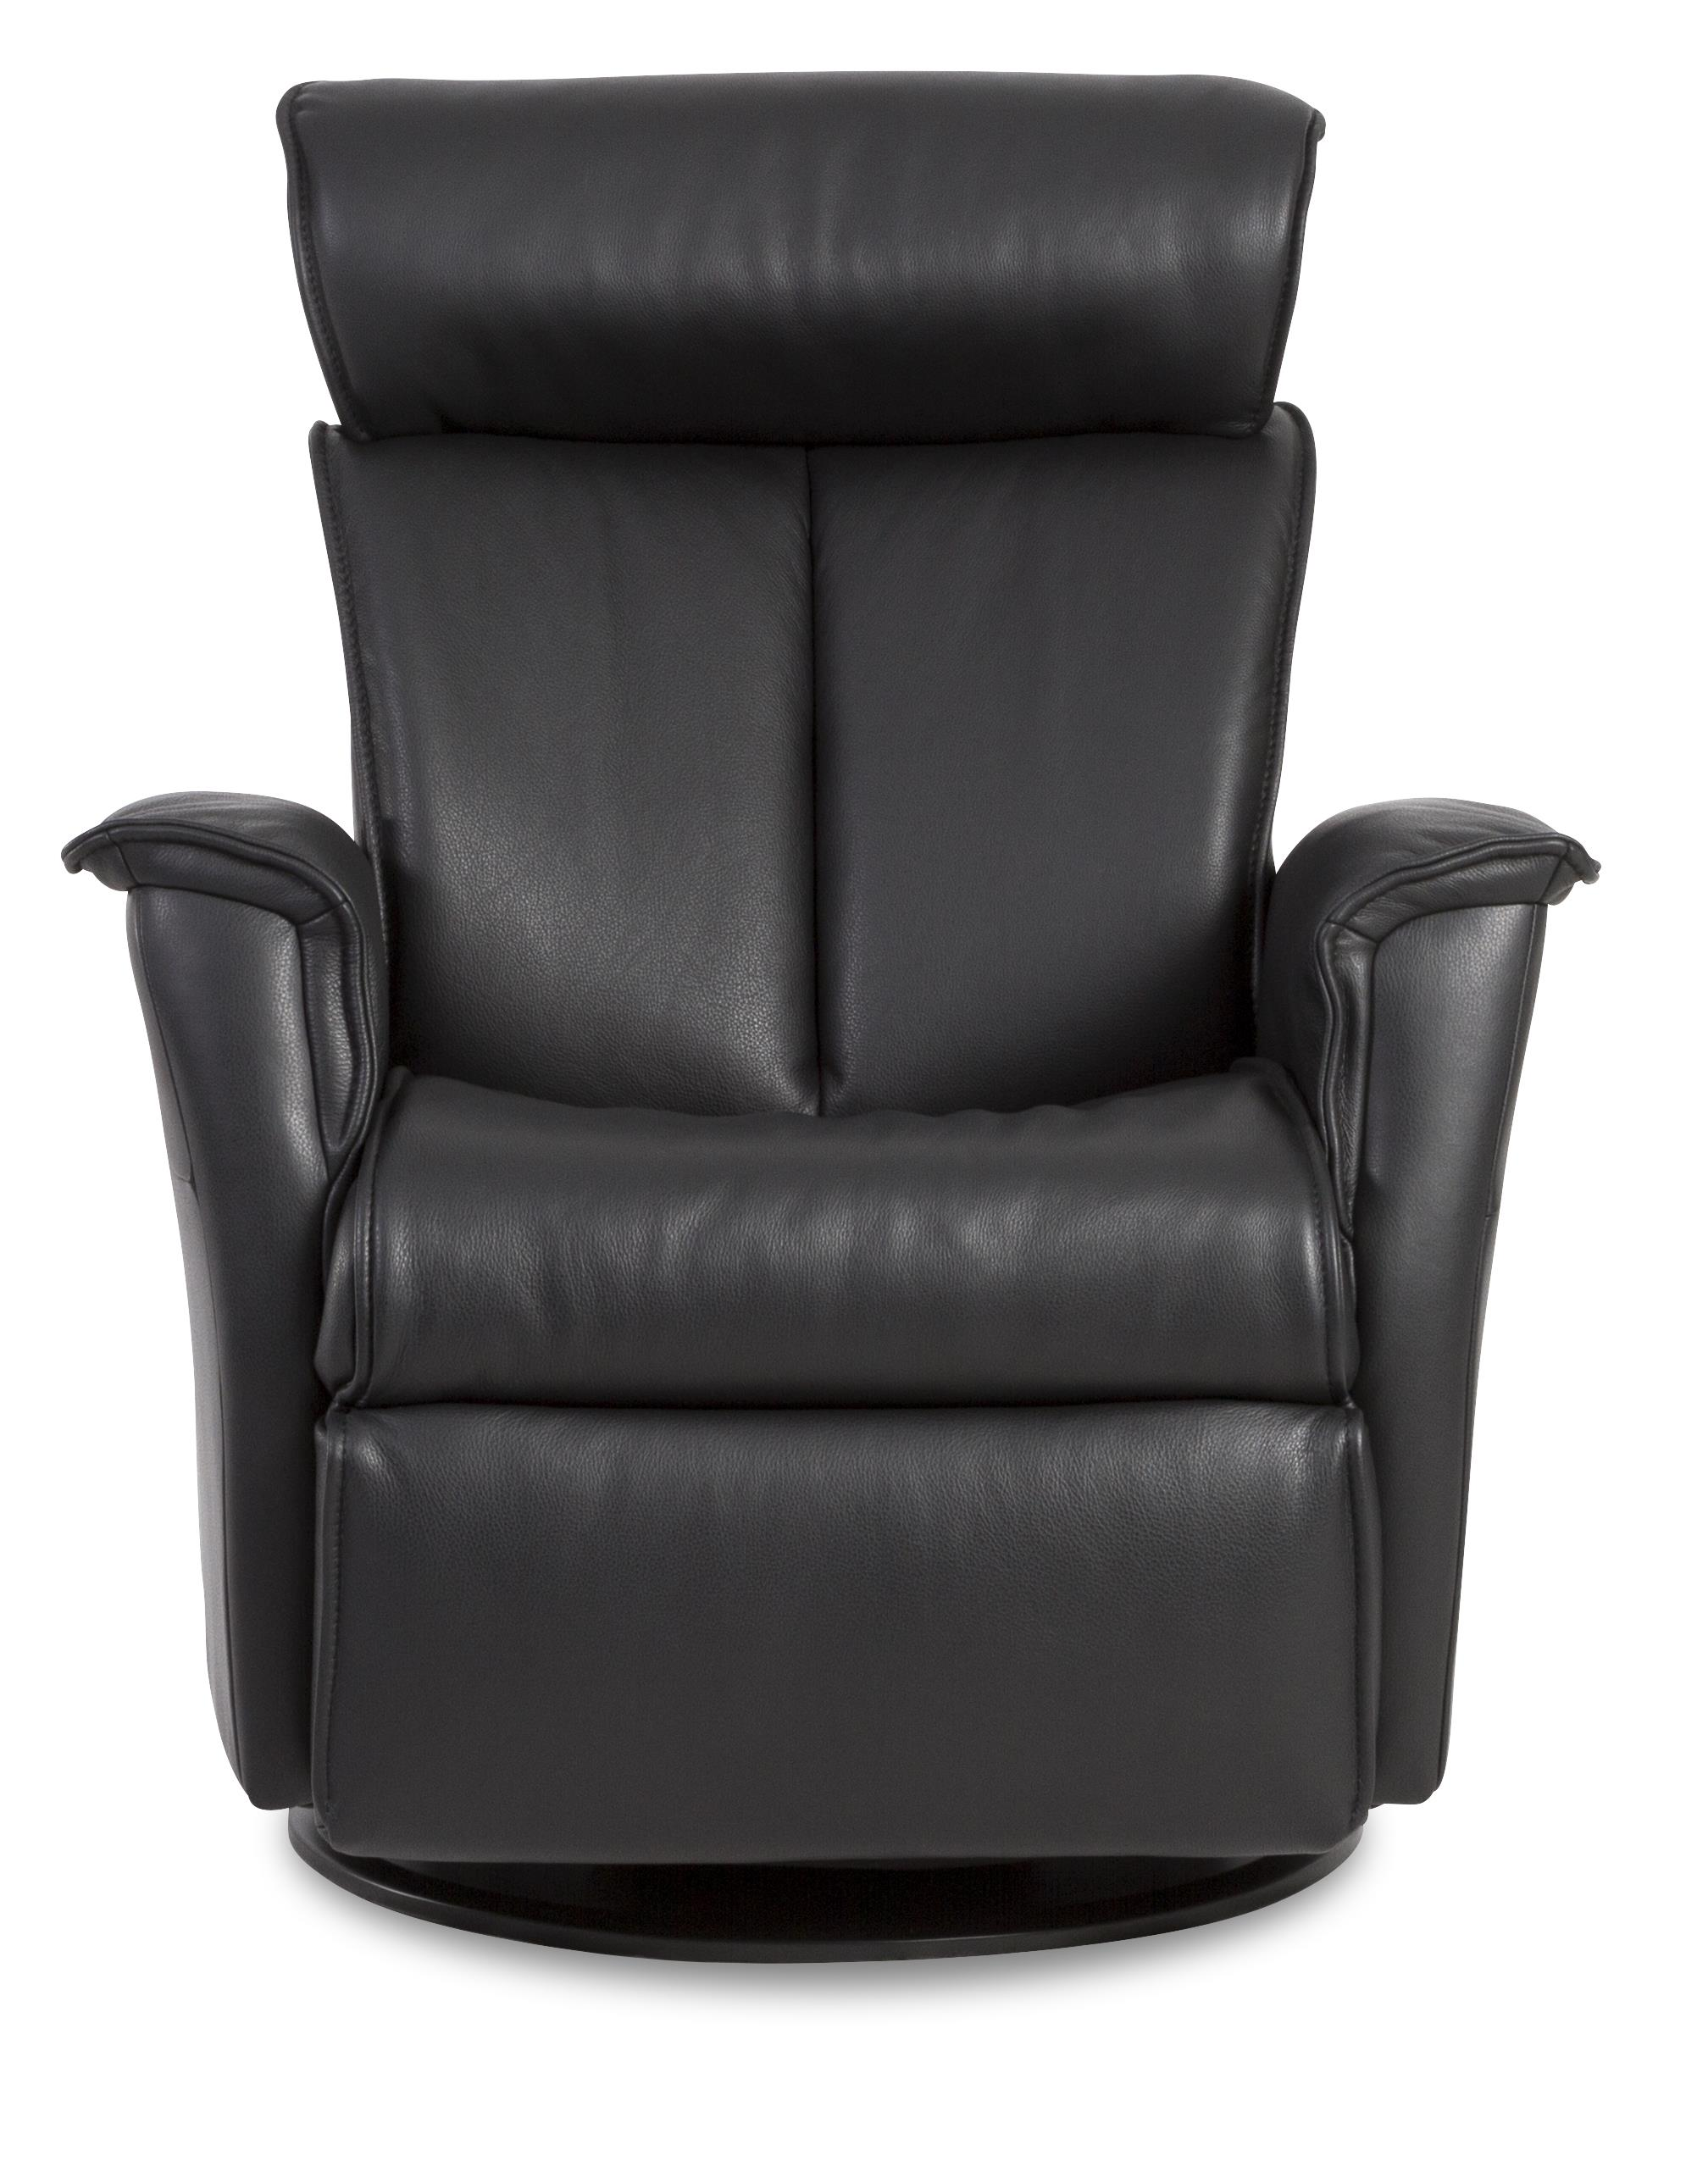 Img Norway Duke Relaxer Recliner With Power Recline